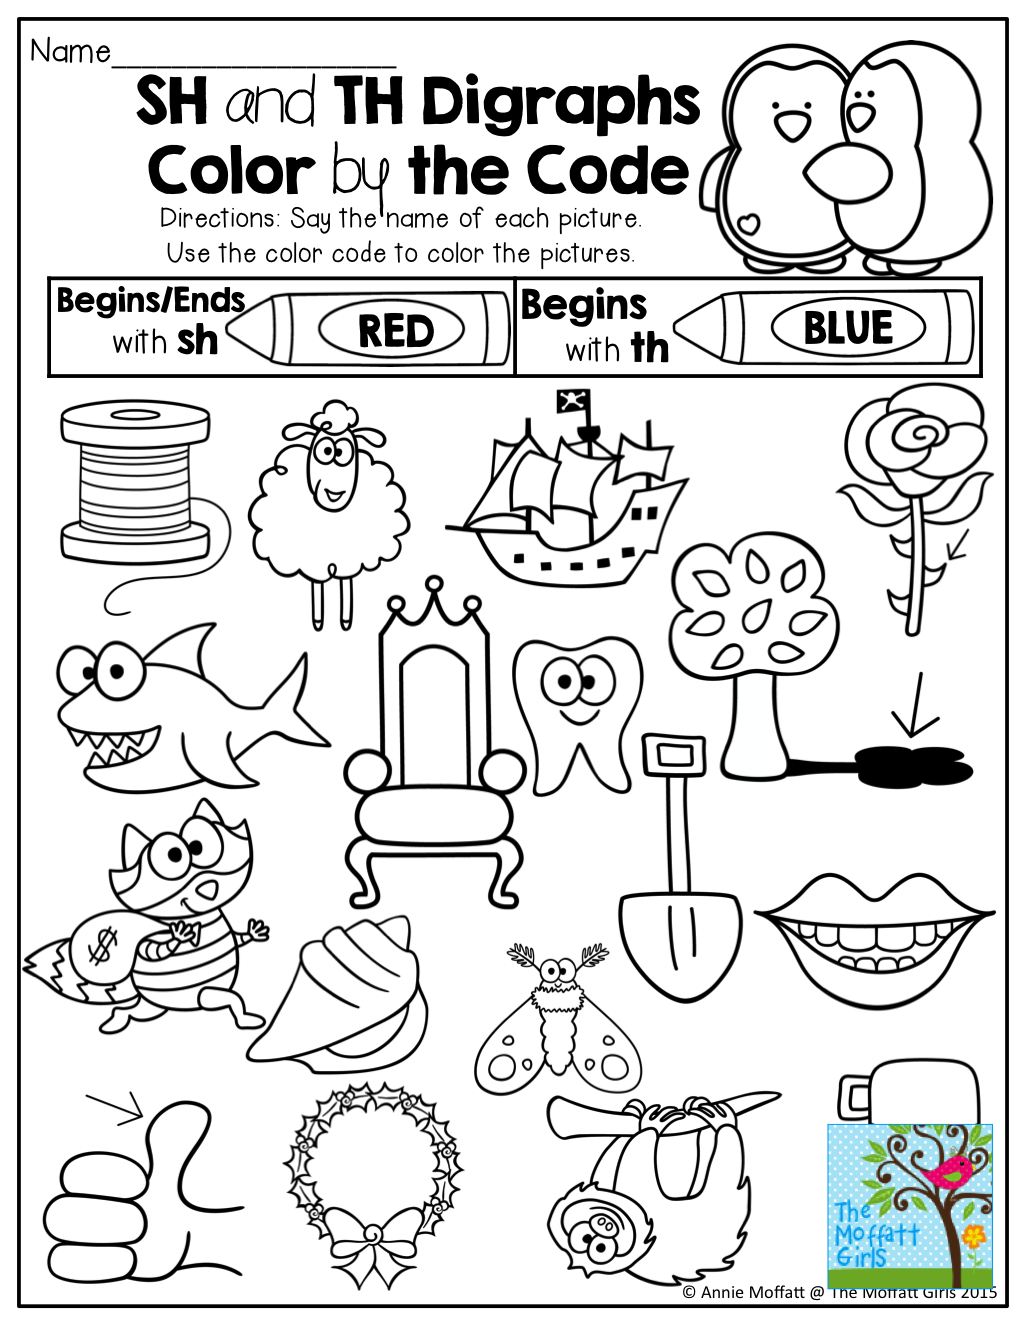 worksheet Th Digraph Worksheets beginning digraphs color by the code tons of fun and engaging sh th so many printables to help with fluency